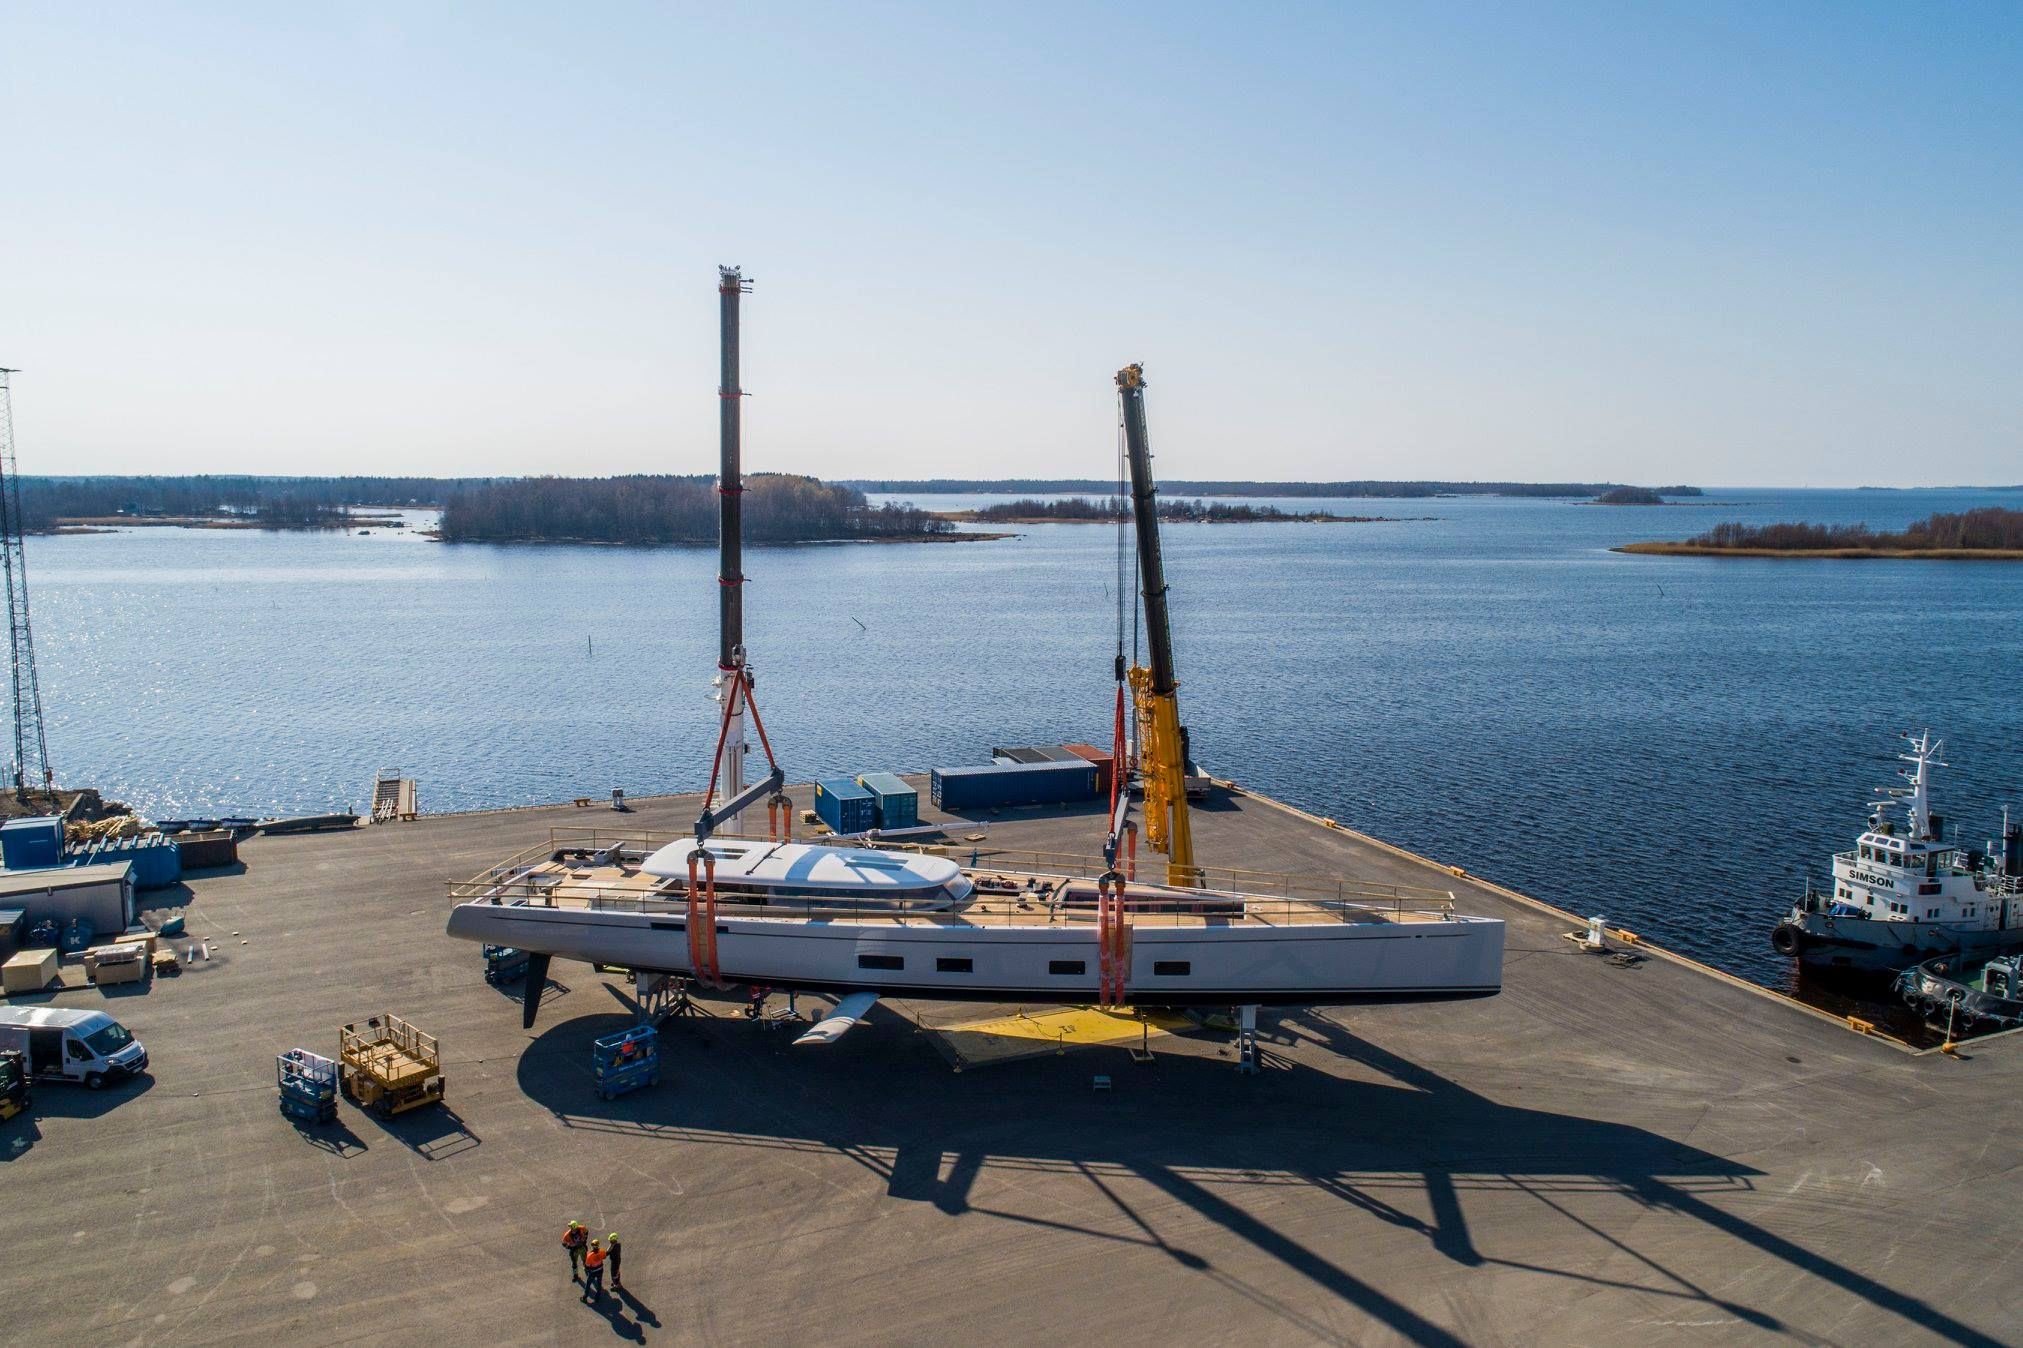 Baltic 142 Canova yacht getting ready for launch - Photo © Baltic Yachts.